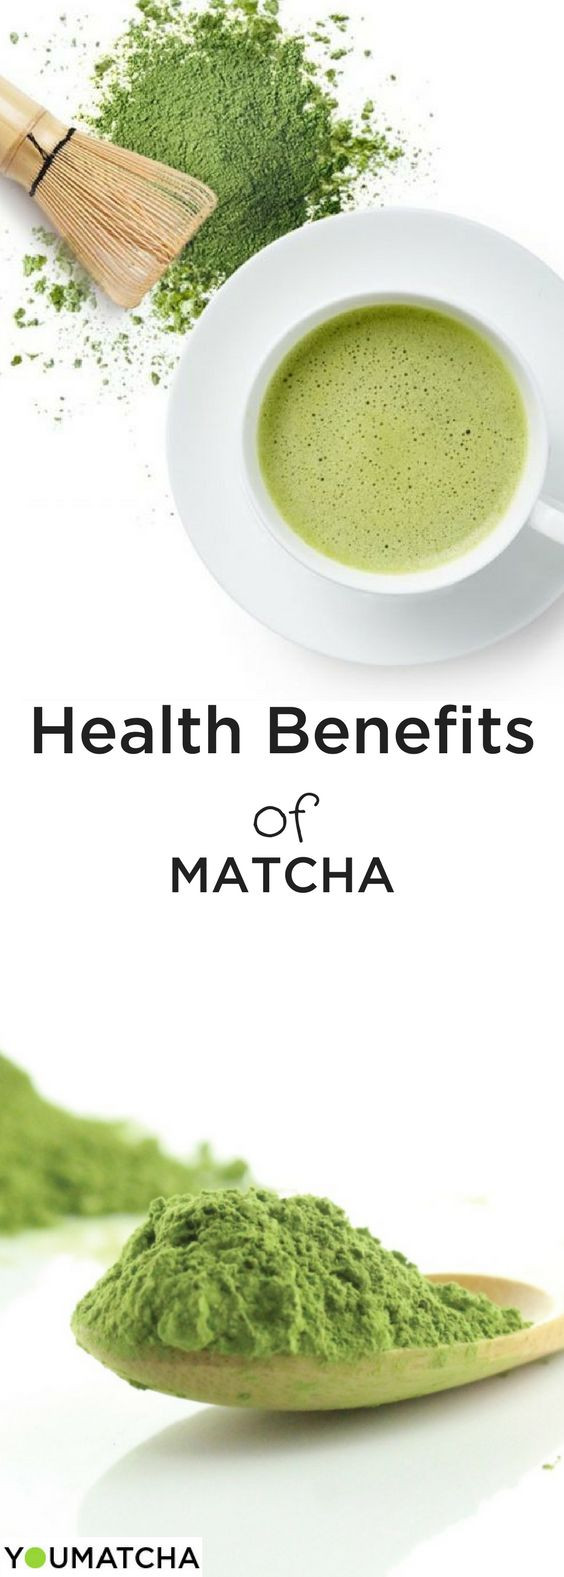 We all know that green tea benefits are amazing, but when you consume matcha, you consume all of green tea's benefits in the most concentrated form — and the matcha tea health benefits are amplified!